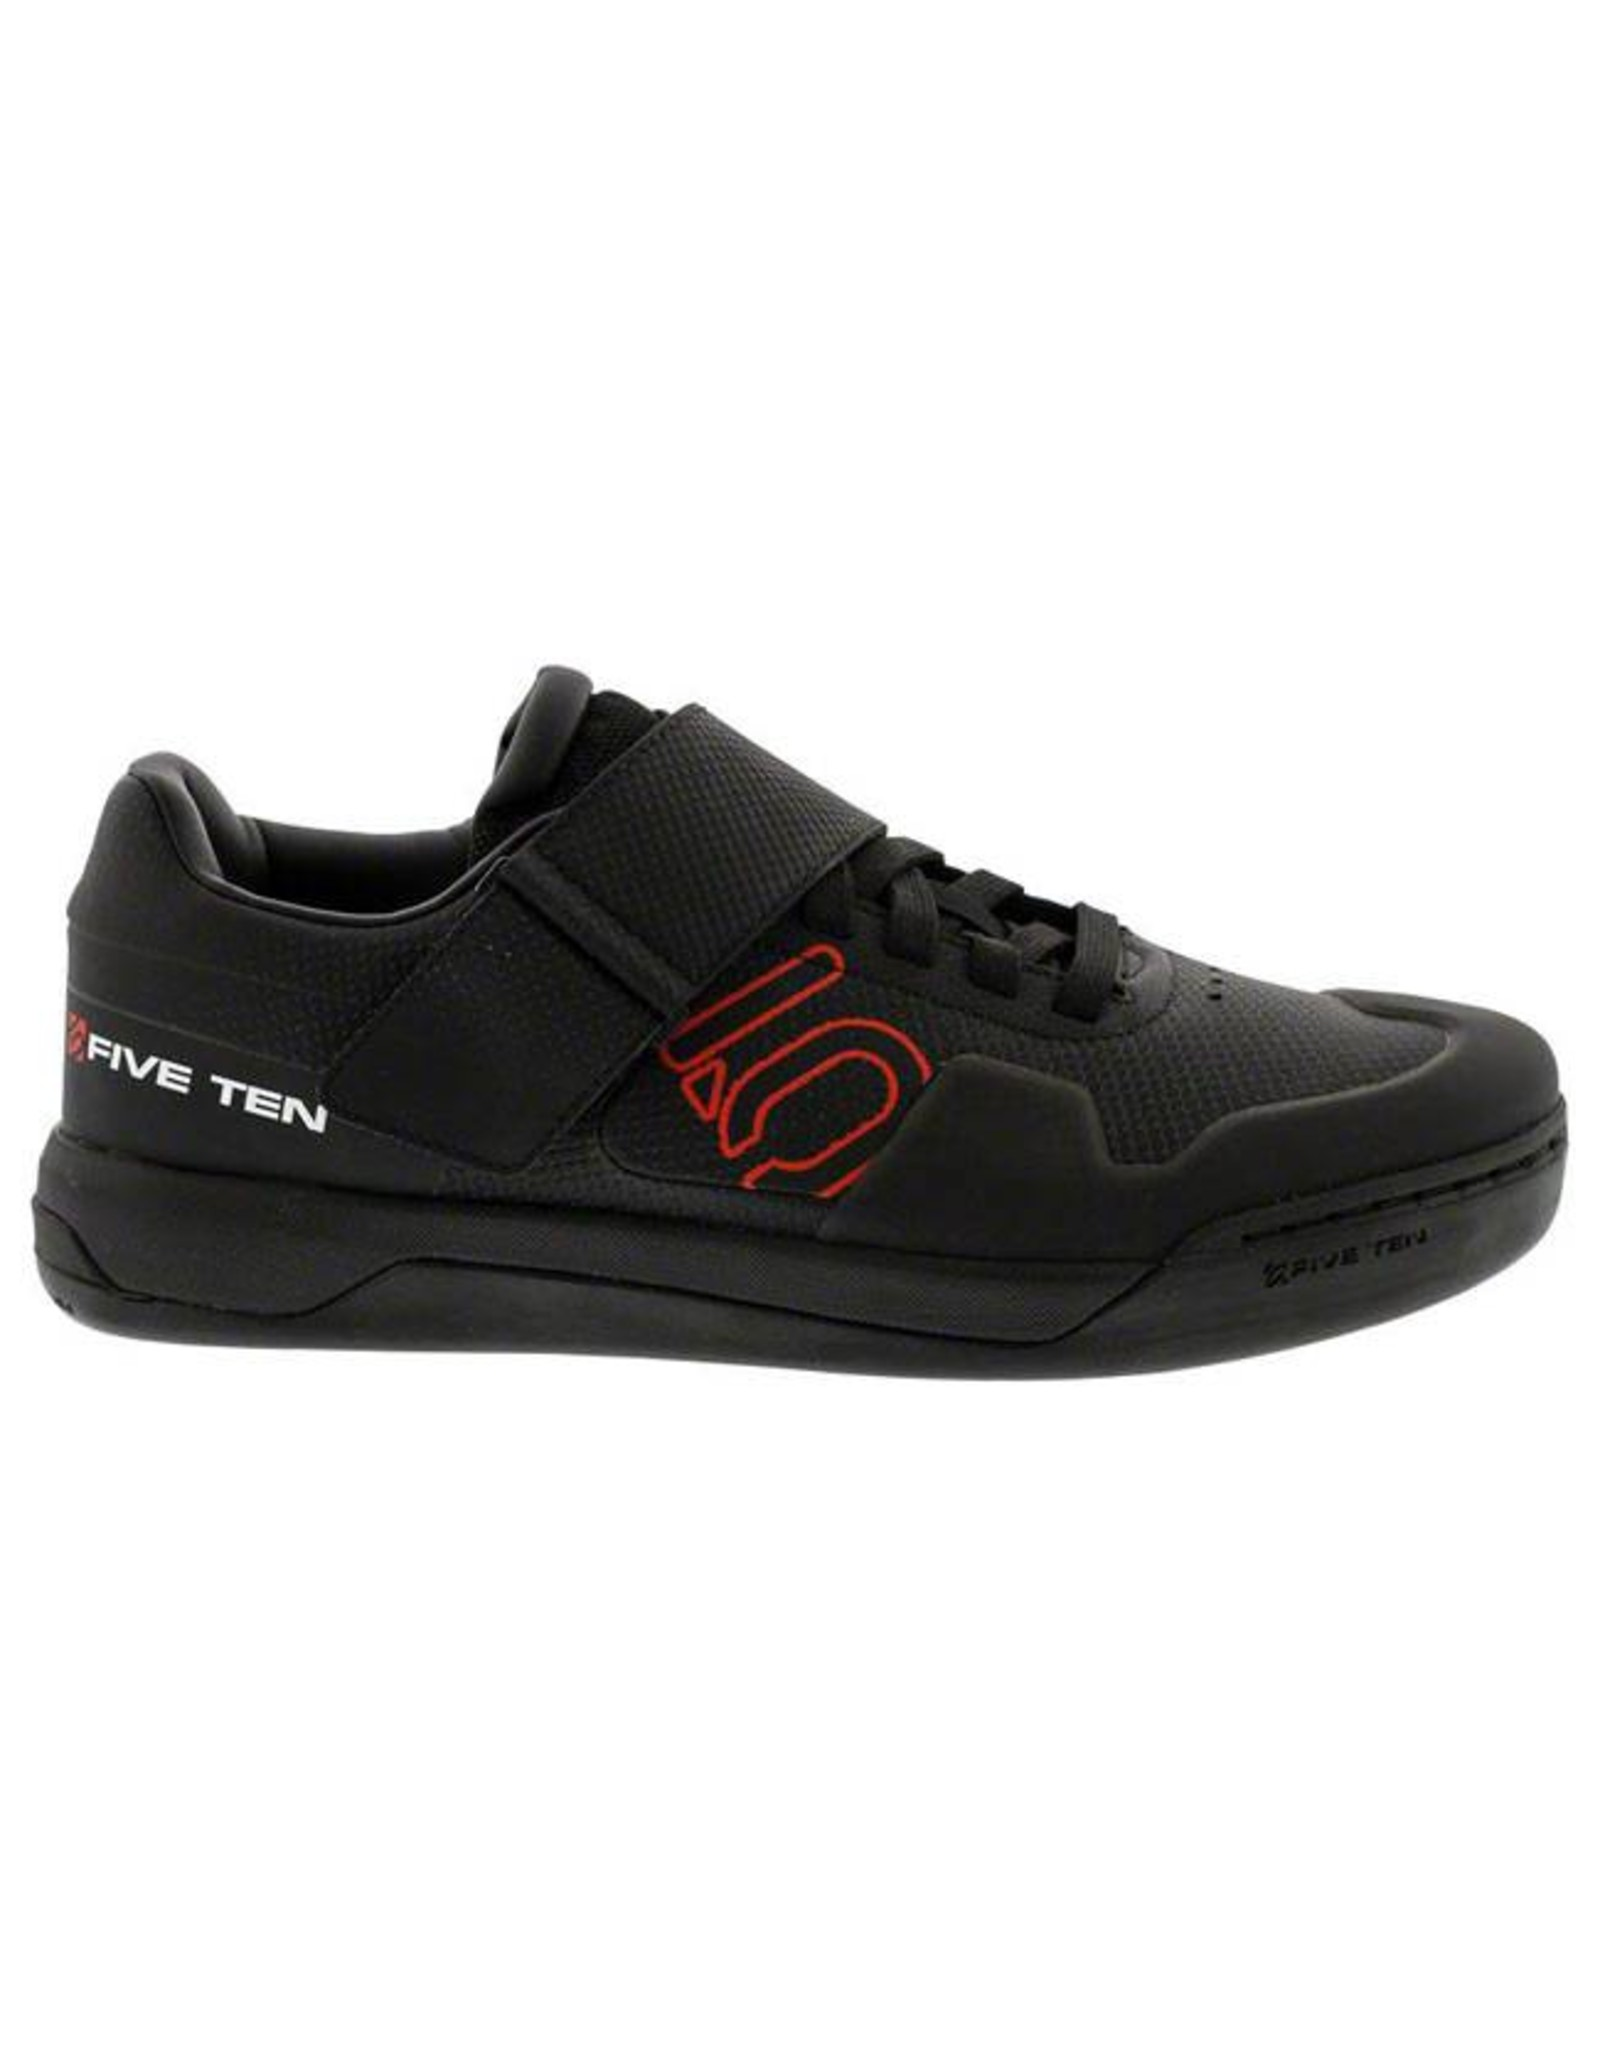 Five Ten Five Ten Hellcat Pro Men's Clipless/Flat Pedal Shoe: Black 10.5